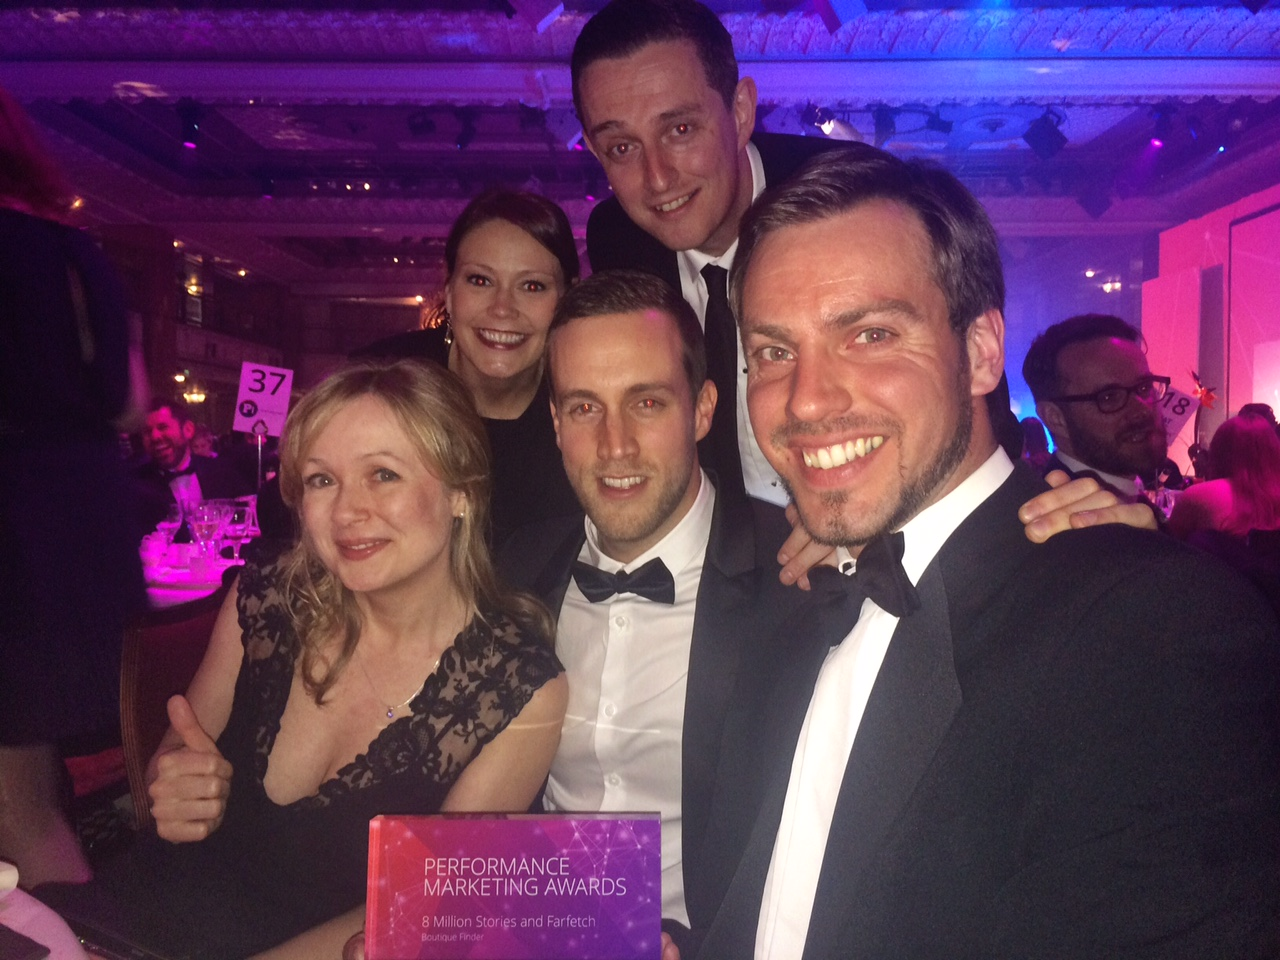 8MS At The Performance Marketing Awards 2015